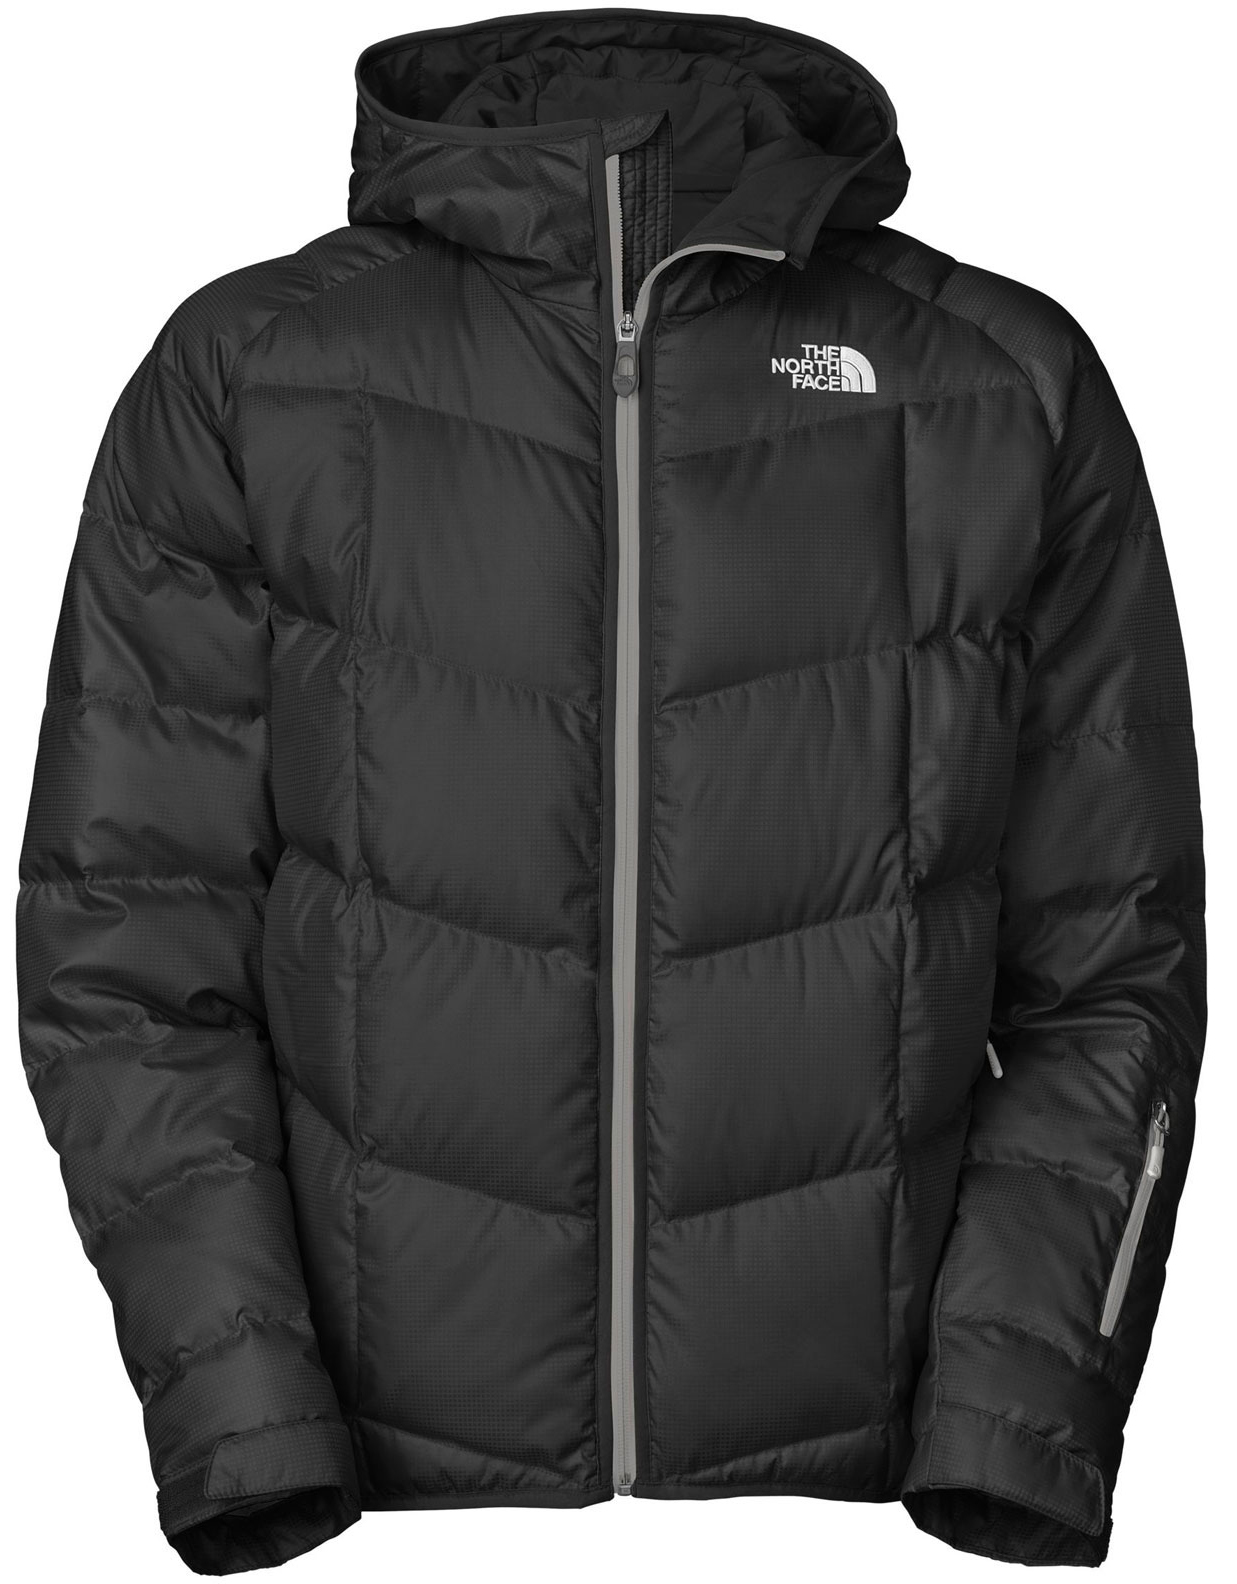 "Ski 550 down-filled warmth in a water-resistant, DWR-treated ski jacket with a powder skirt and pass pocket. Key Features of The North Face Gatebreak Down Ski Jacket: Avg Weight: 860 g (30.34 oz) Center back: 29"" Fabric: shell: 50D 82 g/m2 polyester shadow ripstop with DWR (bluesign® approved fabric) Insulation: 550 fill down Water-resistant, windproof, breathable Handwarmer zip pockets Wrist accessory pocket with goggle cloth Internal media pocket Internal goggle pocket Powder skirt Adjustable hem system Adjustable cuff tabs - $160.95"